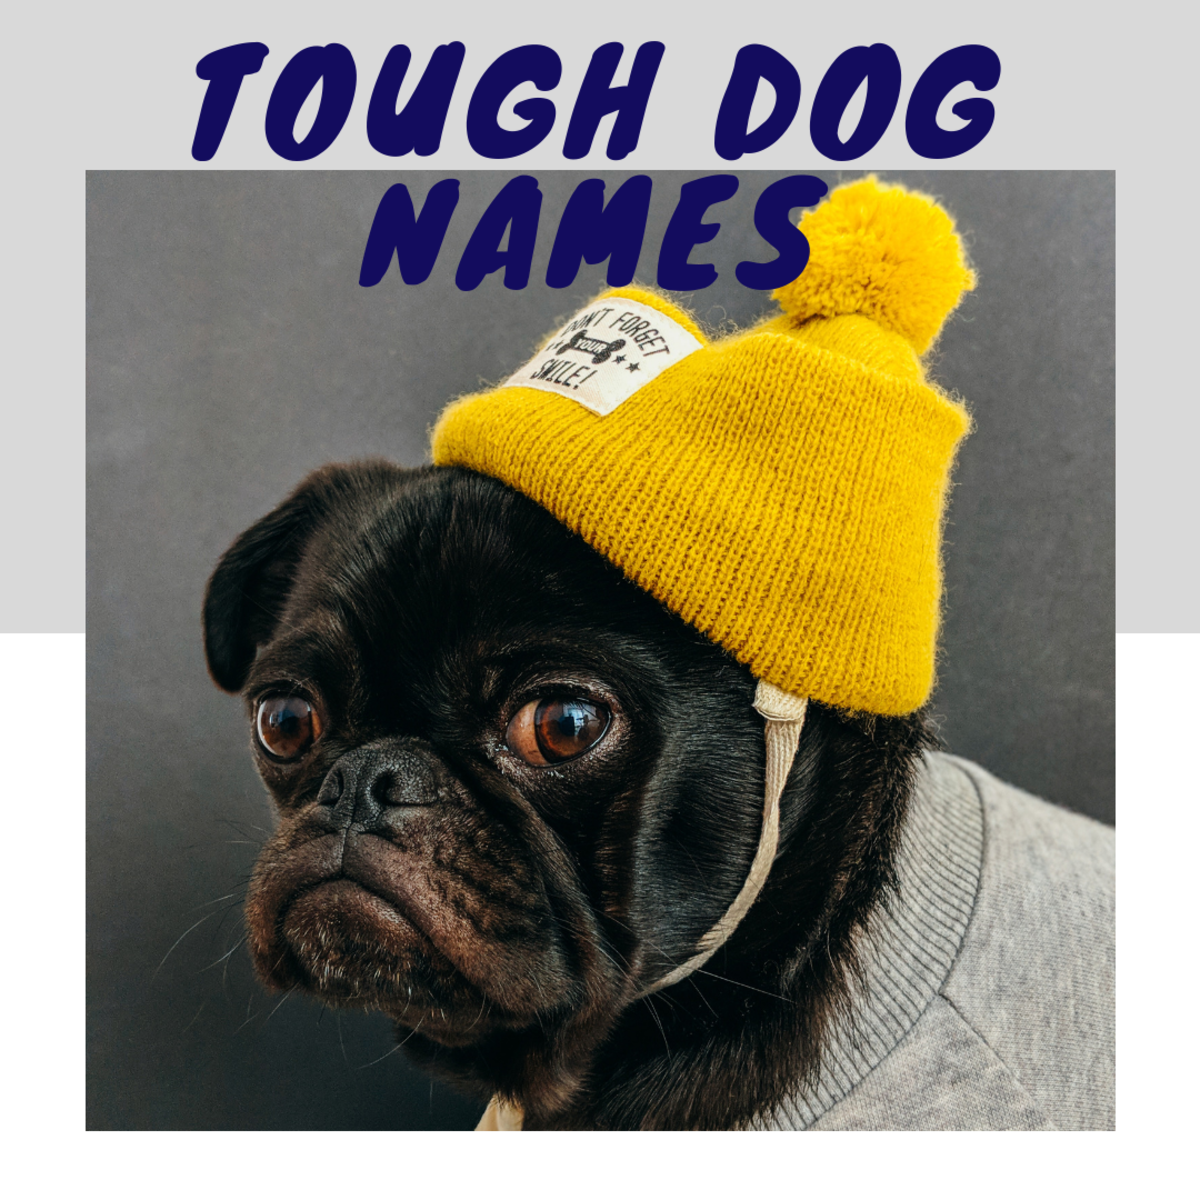 100+ Tough Dog Names for Big, Strong, and Scary Breeds (Male and Female)